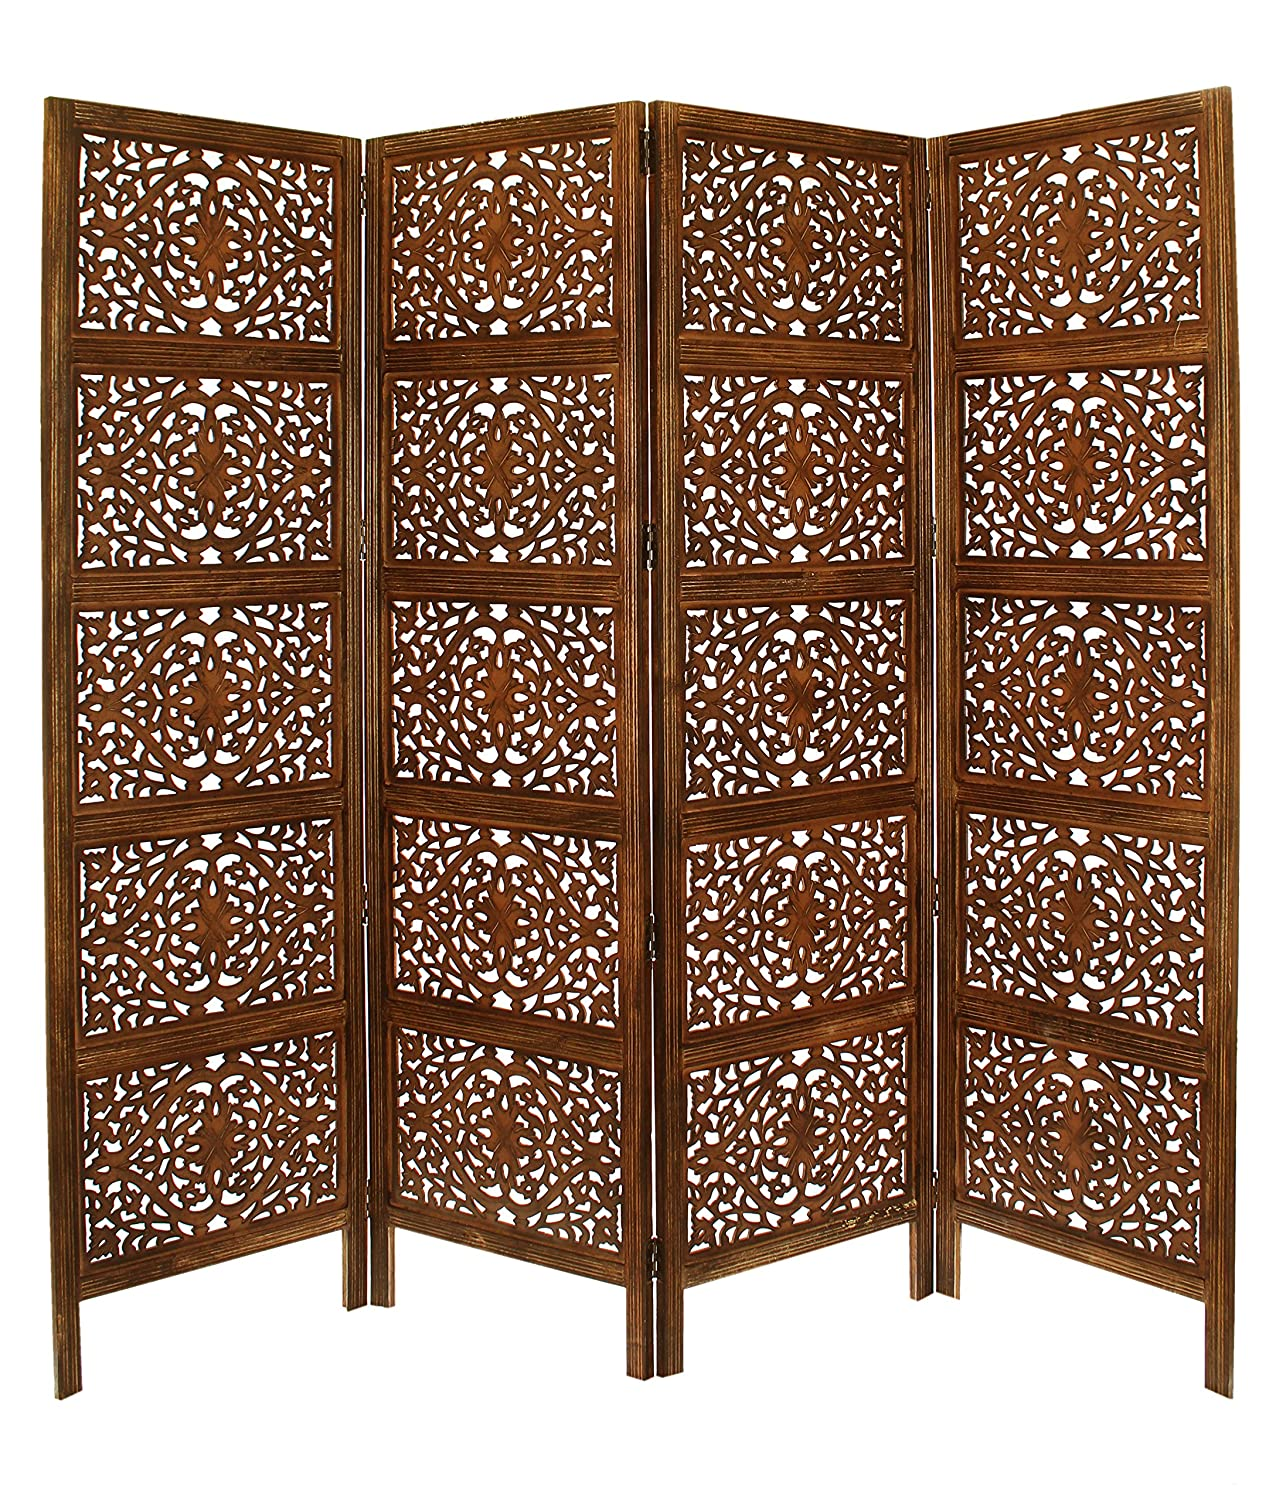 Ghanti Bells - Antique Brown 4 Panel Handcrafted Wood Room Divider Screen 72x80 - With Tiny Bells - Intricately Carved On Both Sides - Reversible - Hides clutter, Adds Décor, and Divides the Room Adds Décor Orient Originals Inc. 20124